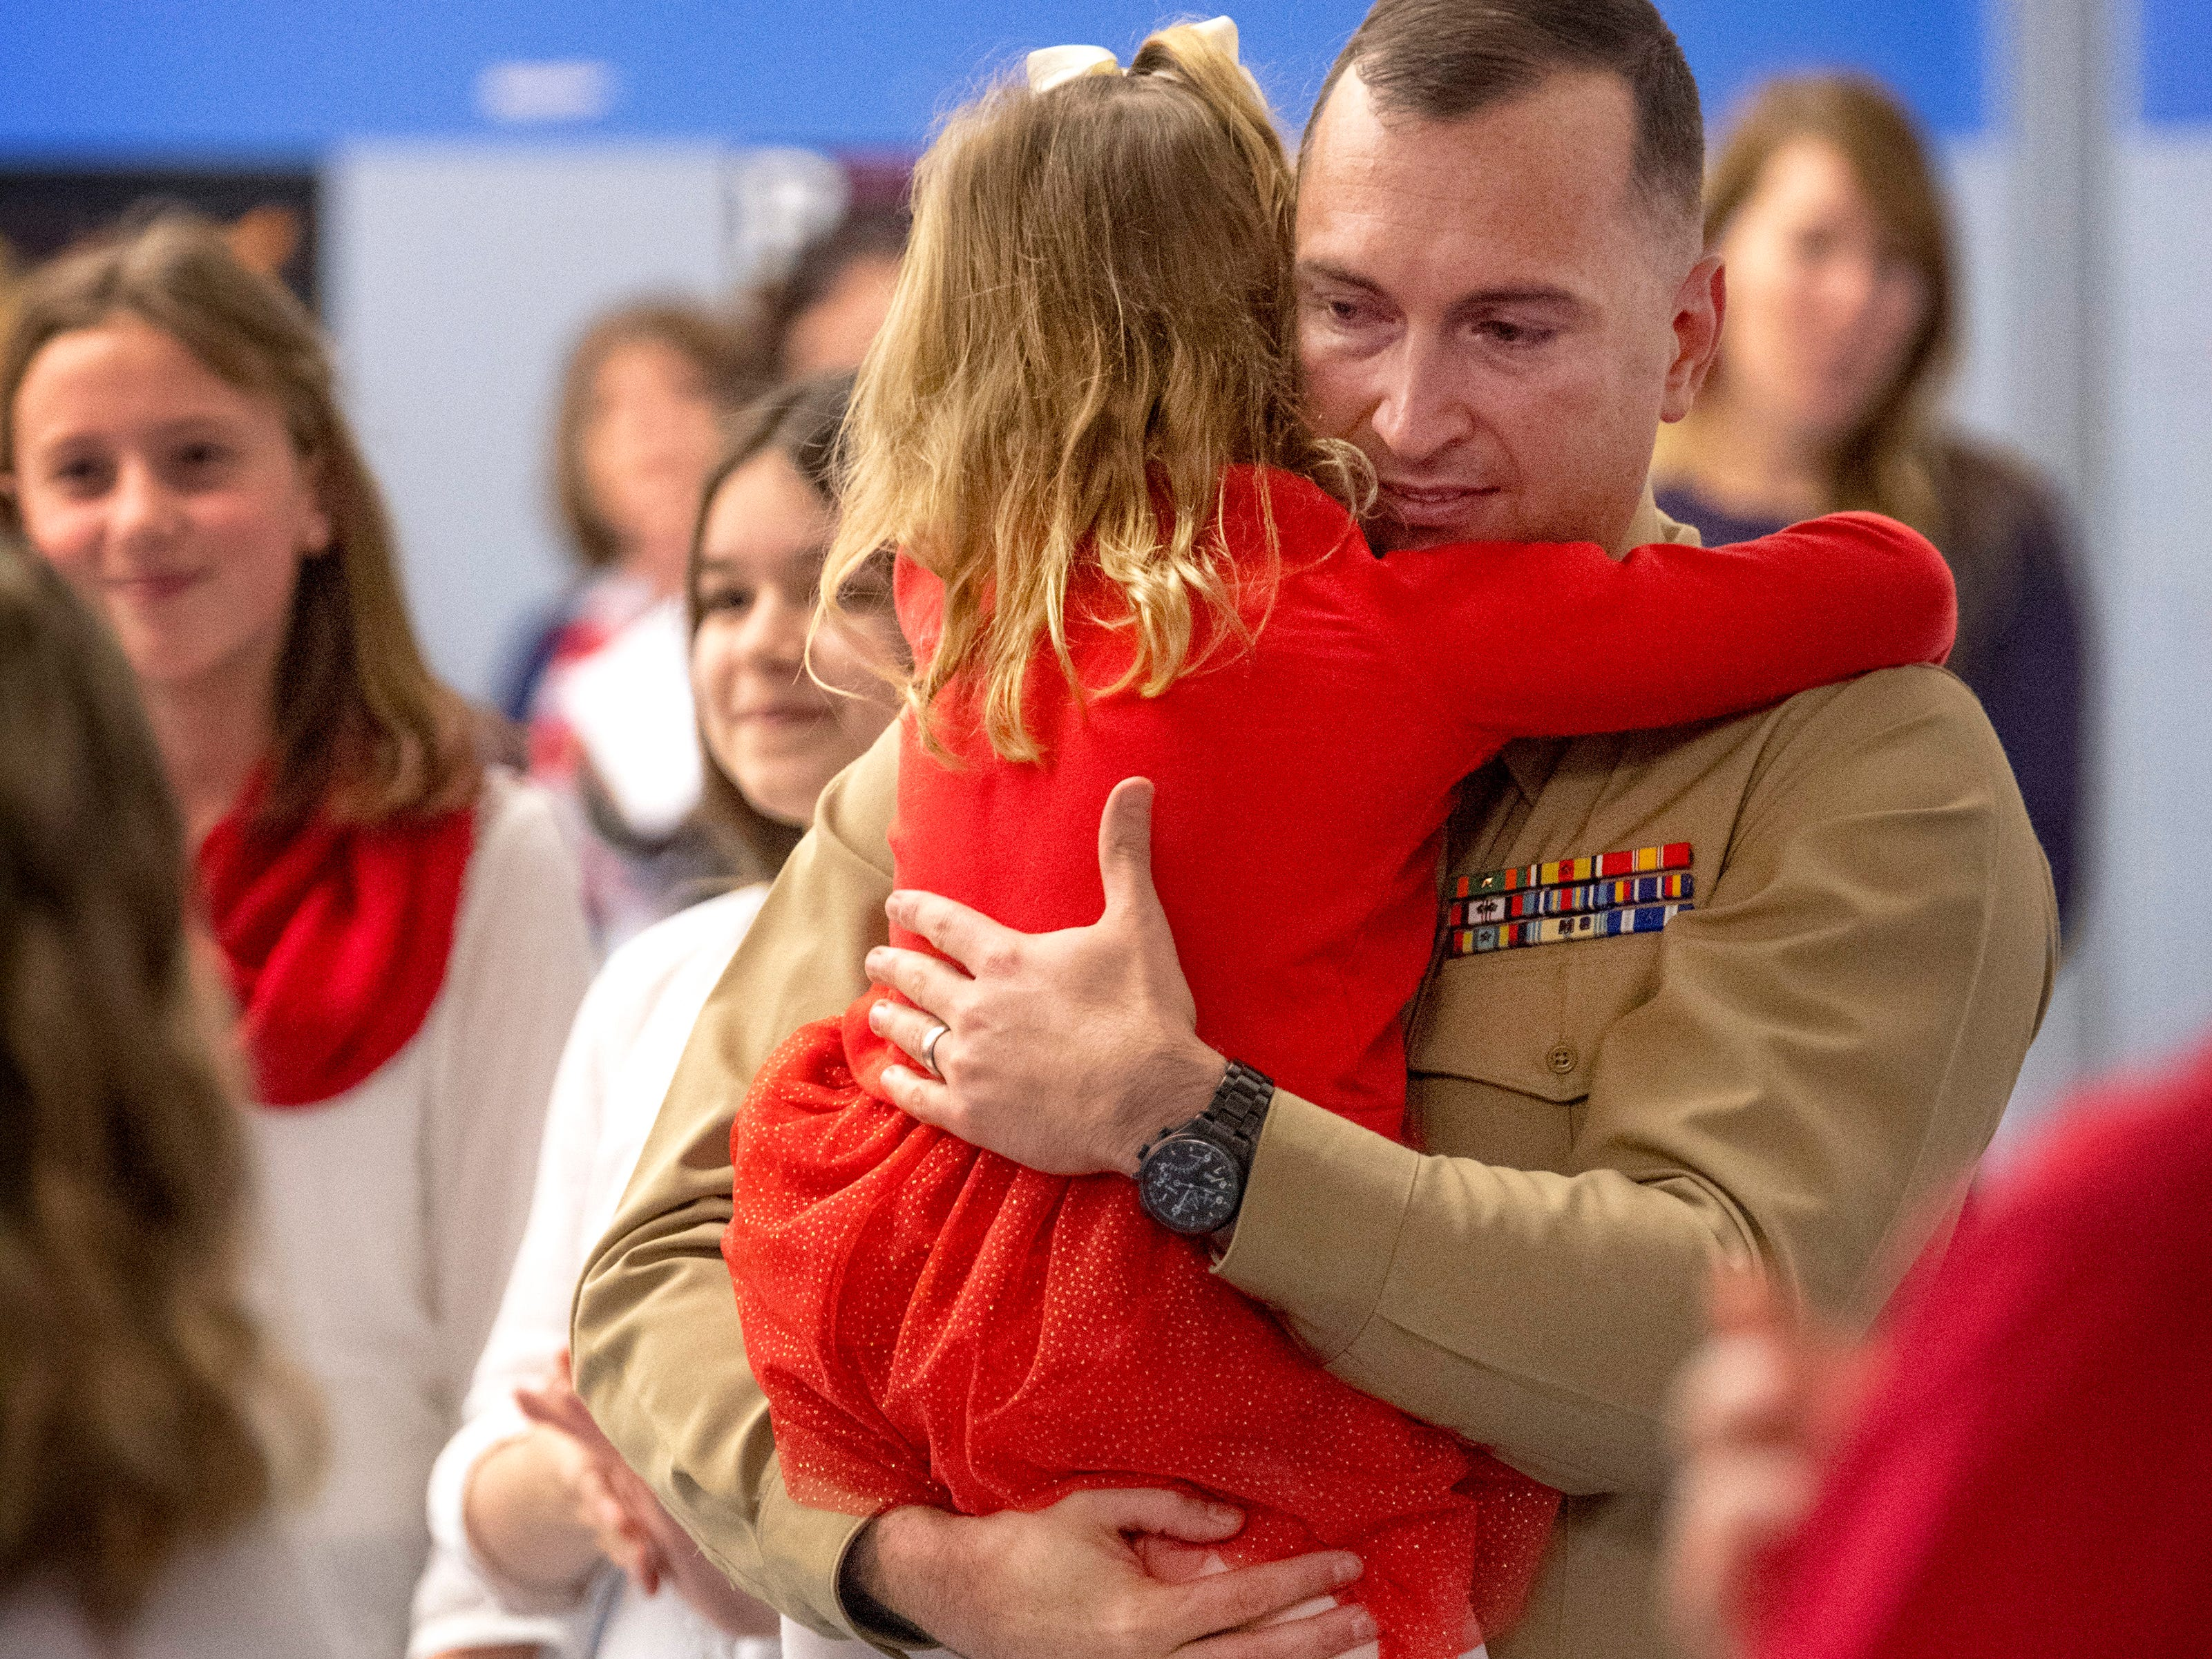 Scott Elementary School kindergartner Eliana Marzec, 5, center, clutches her father, Marine Corps Capt. Ryan Marzec, moments after he surprised her with a visit during the Veterans Day program Friday morning. Captain Marzec returned from a tour in Afghanistan in time to pull off the surprise of the eldest of his three daughters.